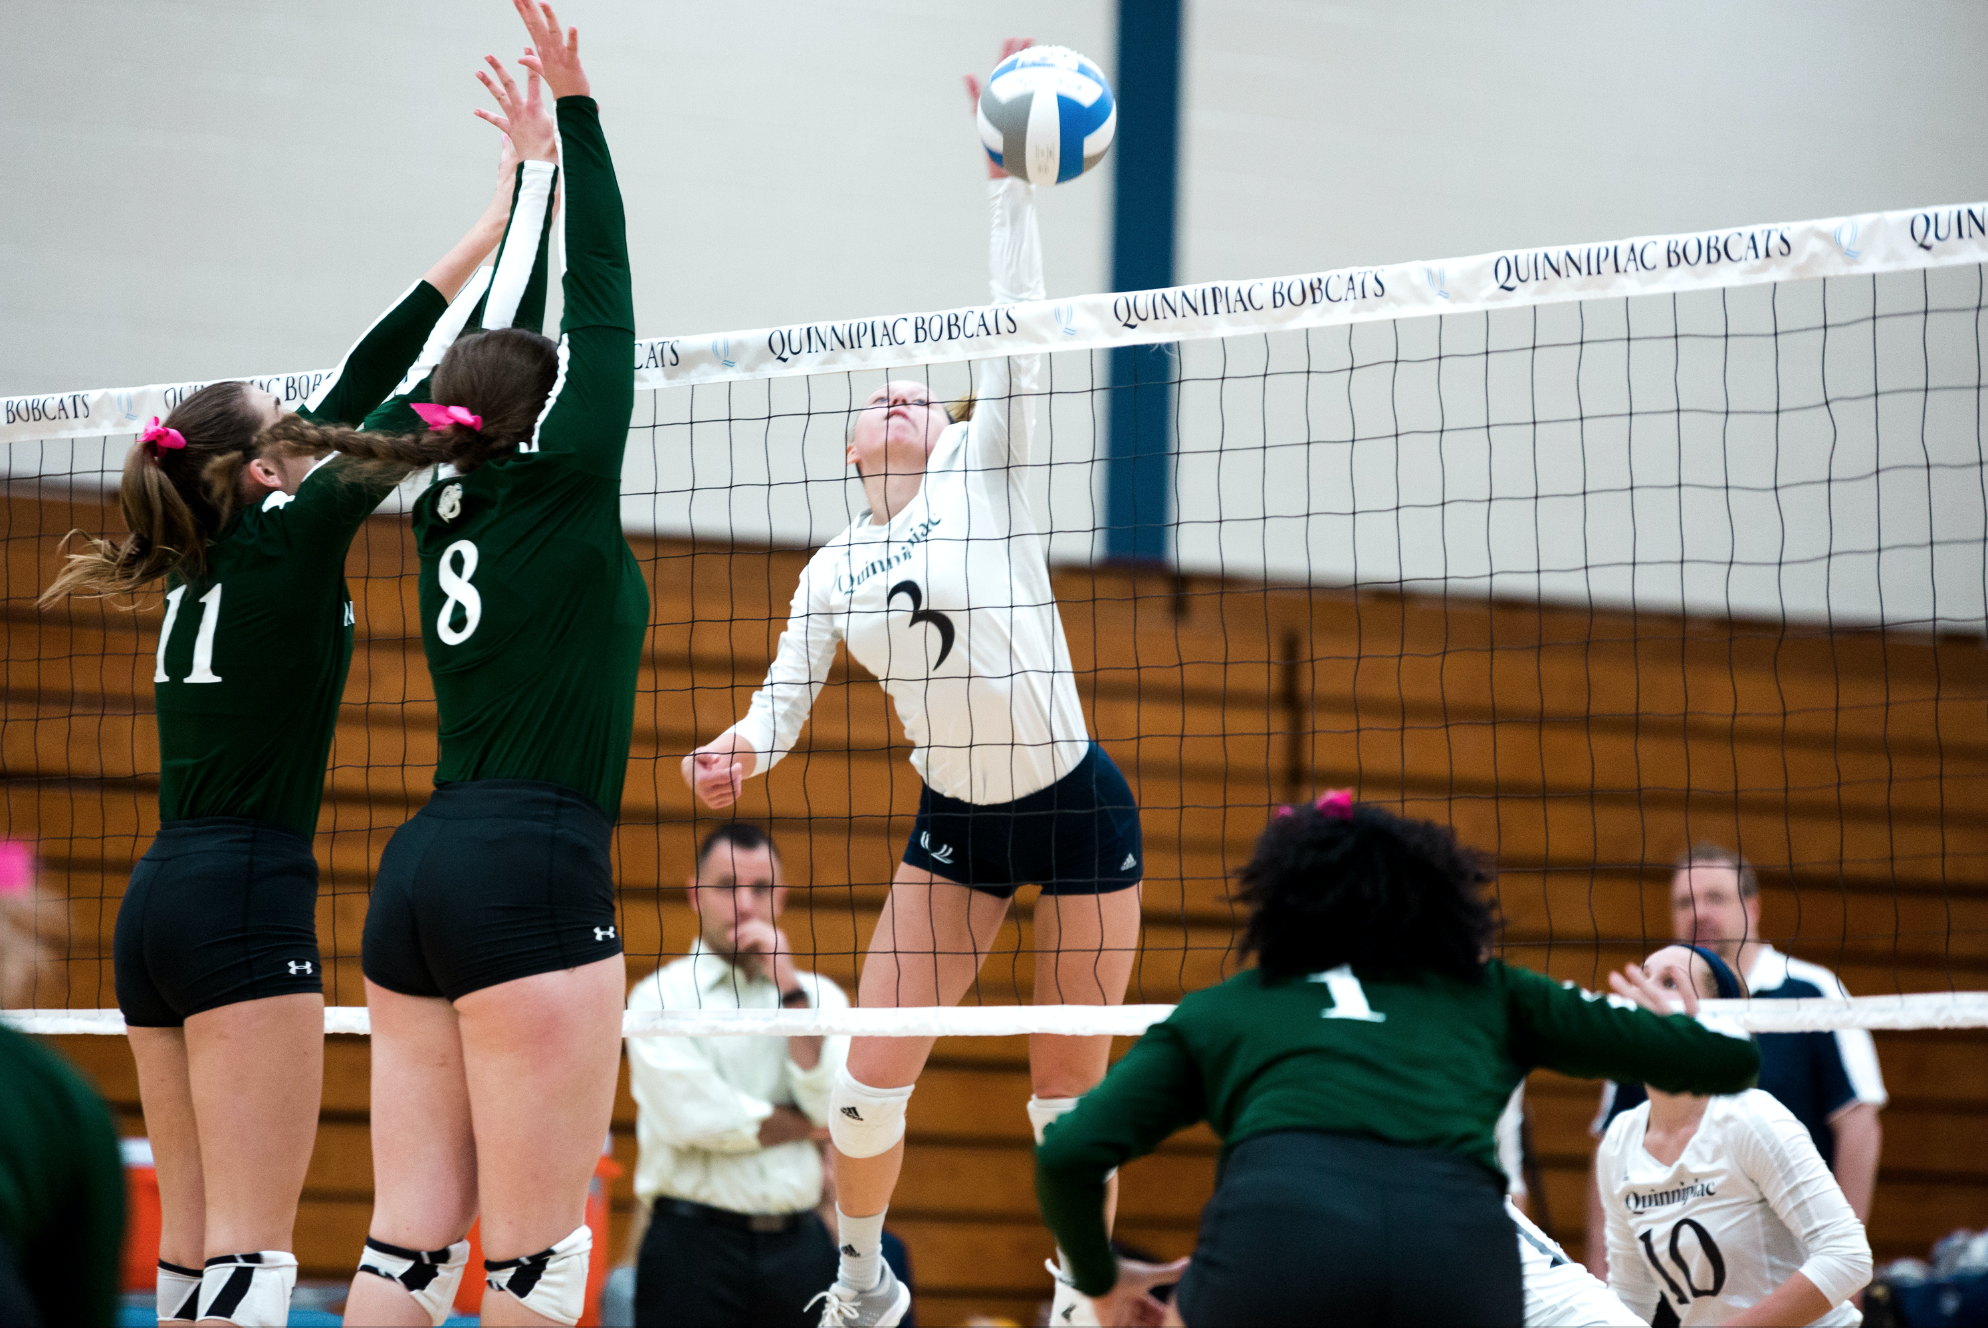 Quinnipiac volleyball ends losing streak with win over Manhattan